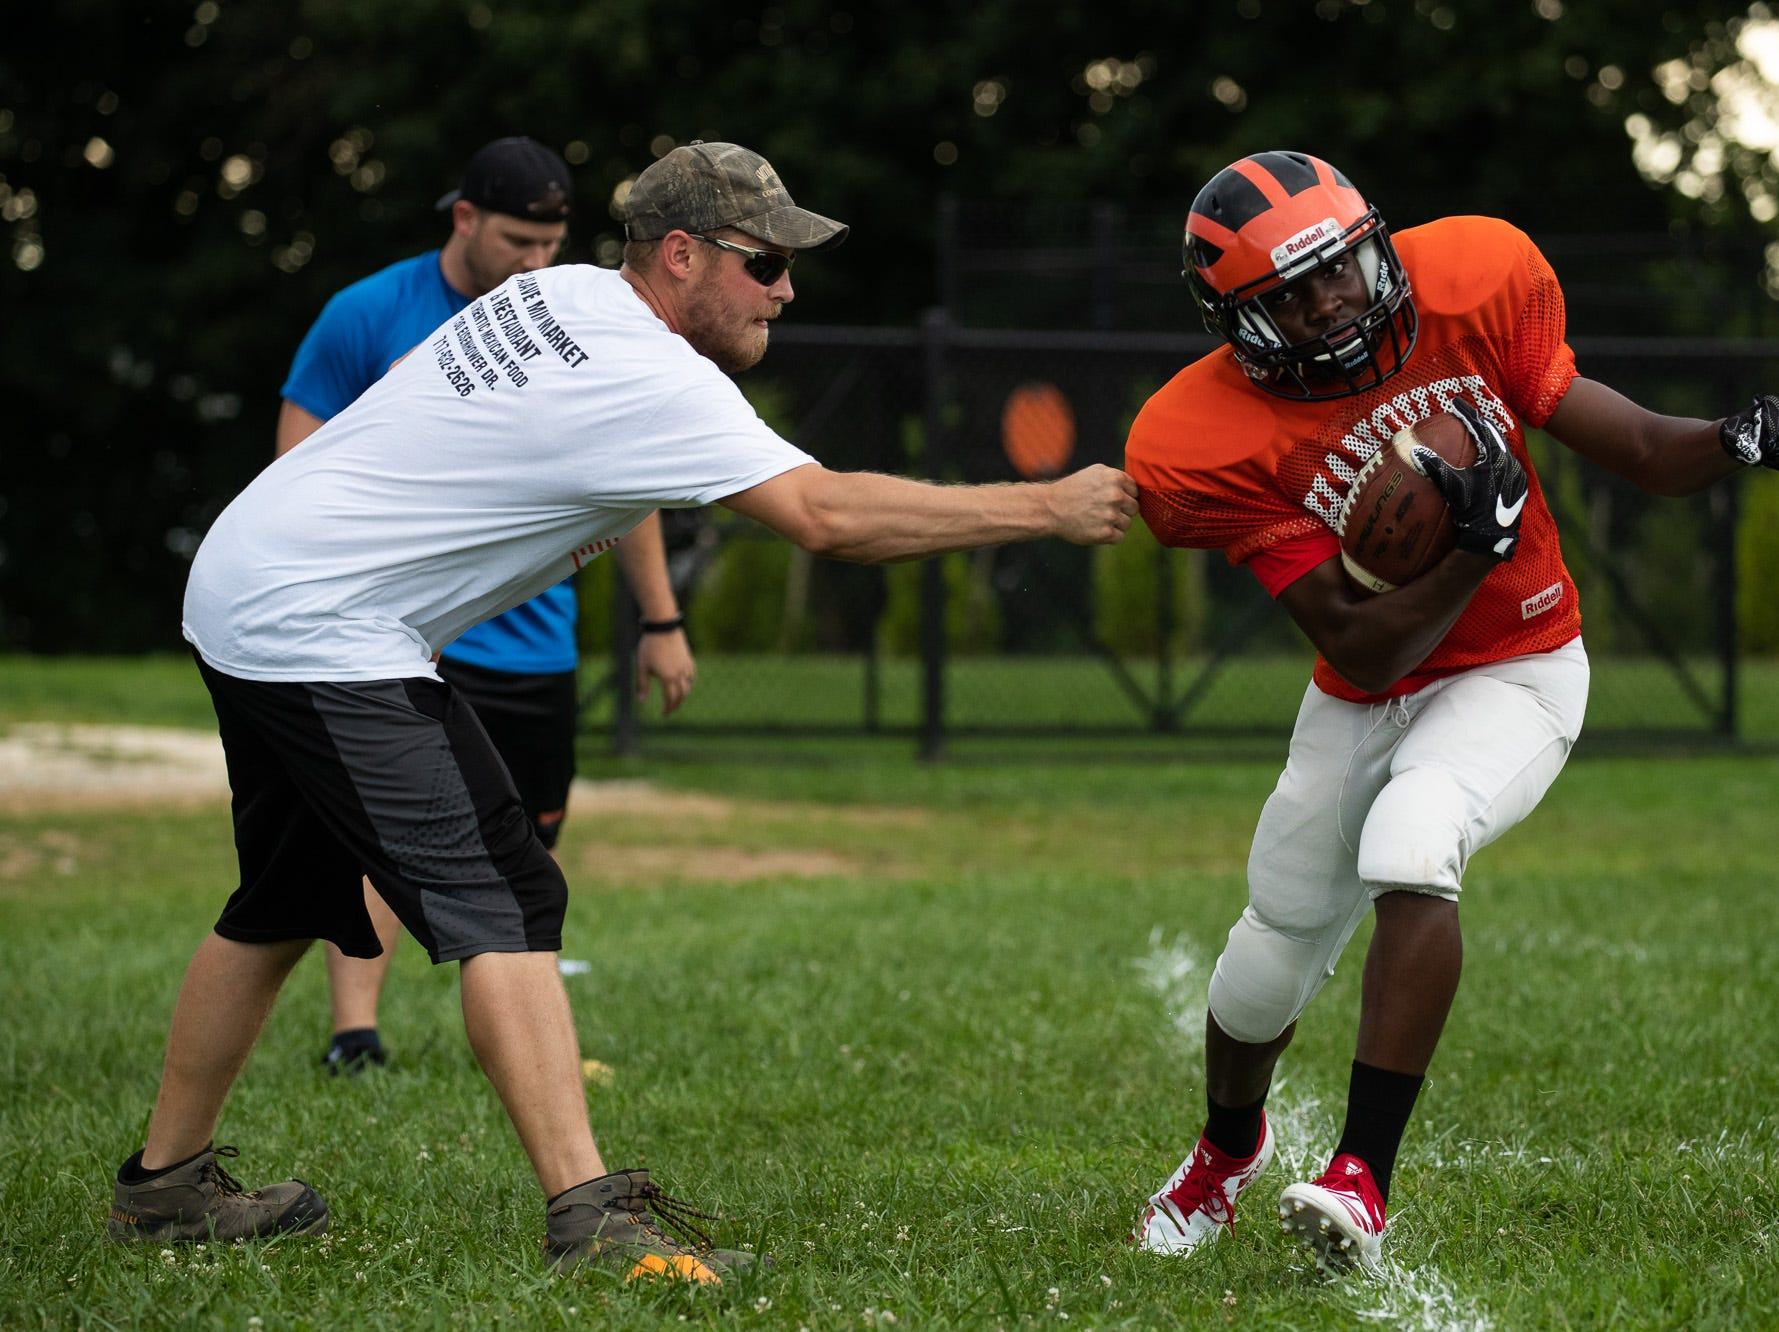 Coach Desch, one of the Hanover High School football team coaches, drills running backs on avoiding disruptions while running with the ball during practices on the first day of fall sports practice, Monday, Aug. 13, 2018, at the Sheppard-Meyers Stadium.